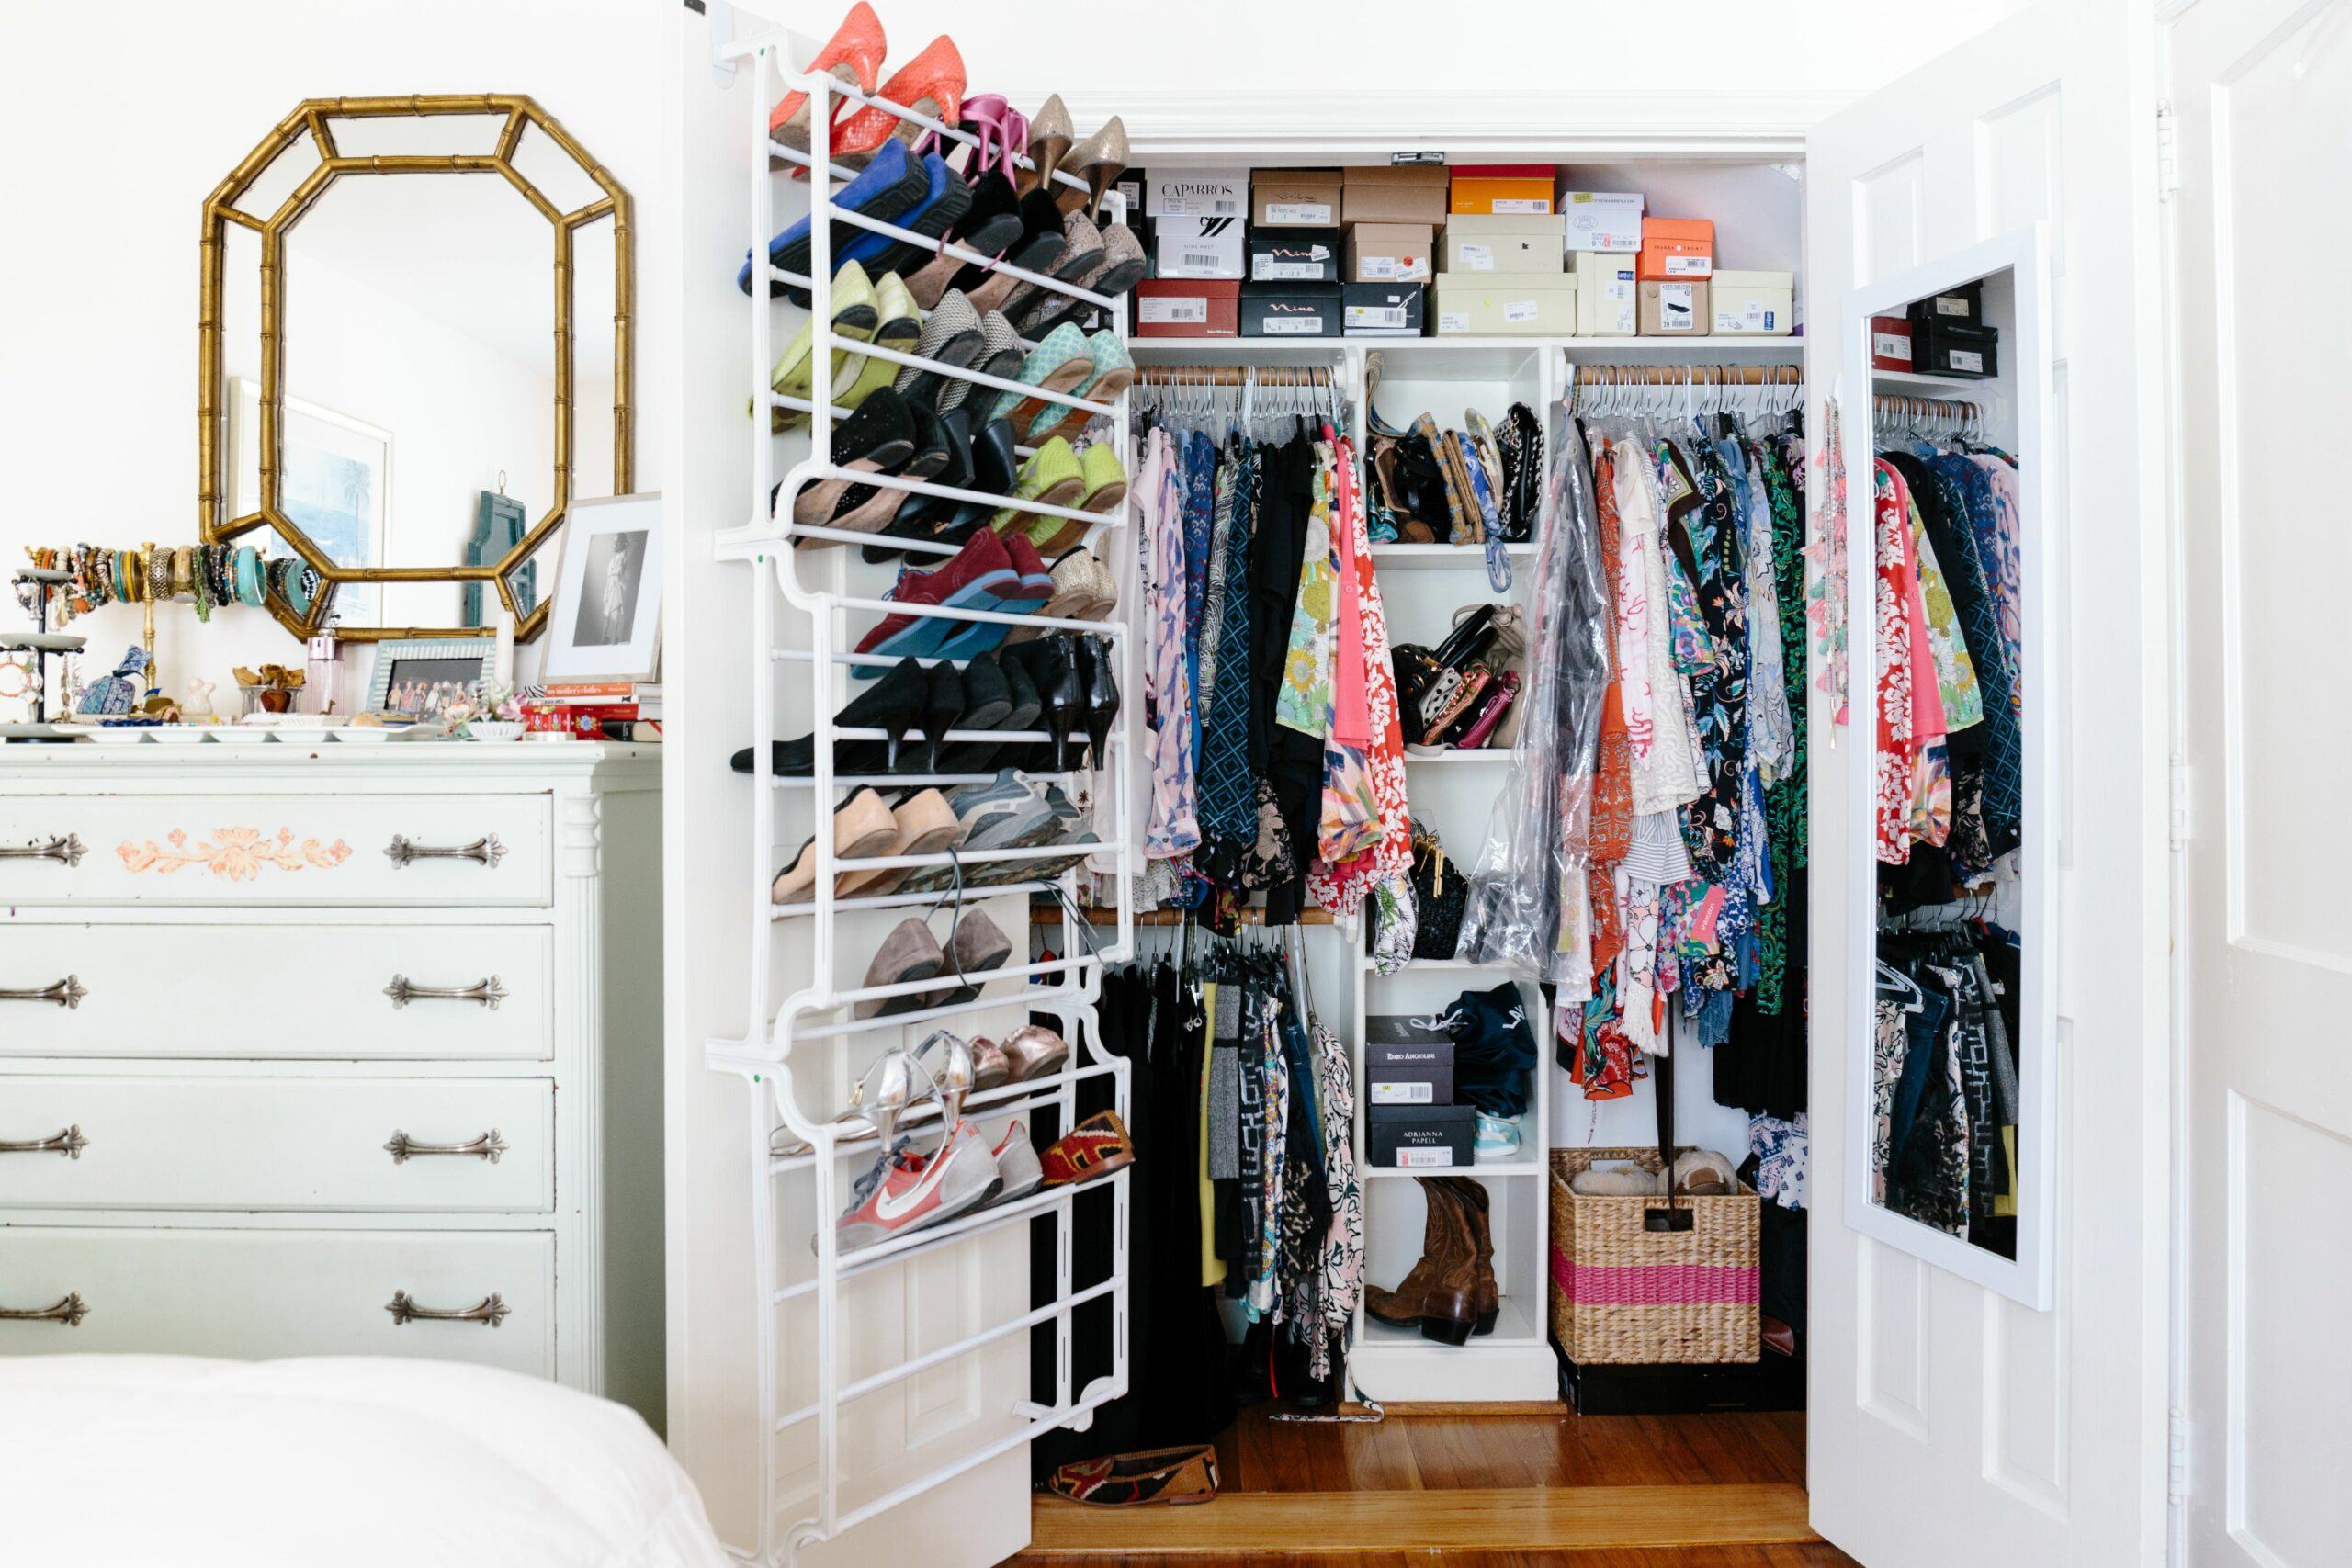 Closet Storage Ideas - Small Closet Organization | Apartment Therapy - closet arrangement ideas